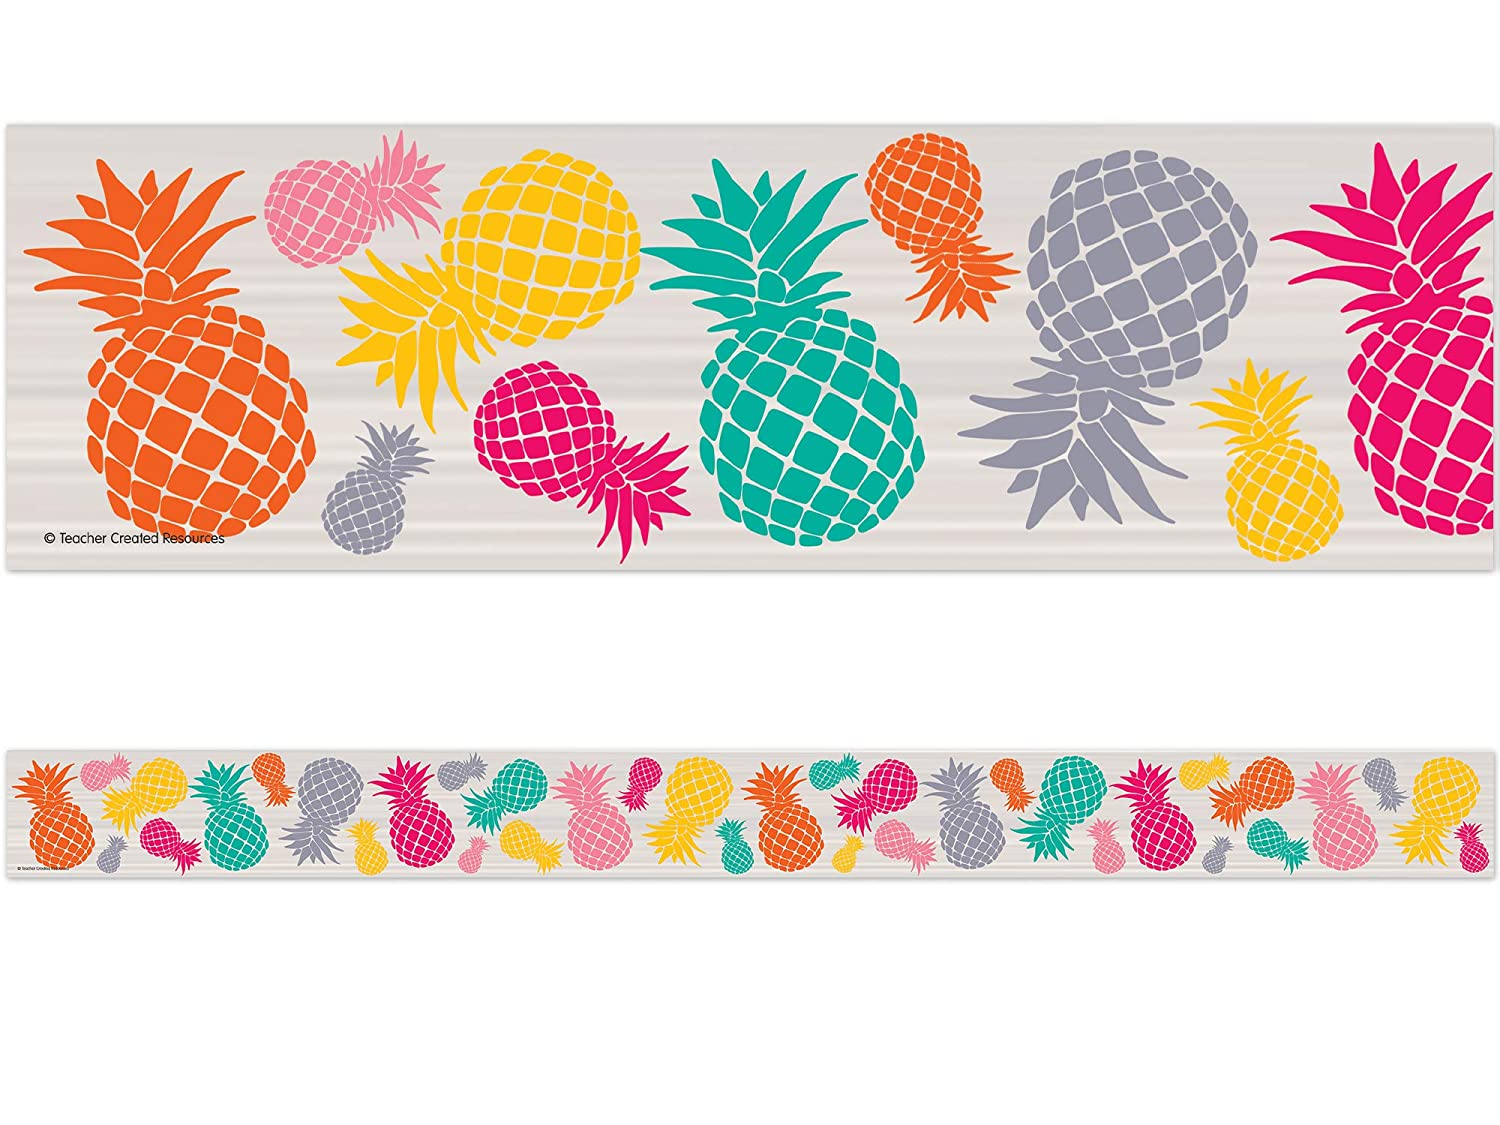 Teacher Created Resources 2157 Spring new work Large discharge sale Straigh Punch Pineapples Tropical